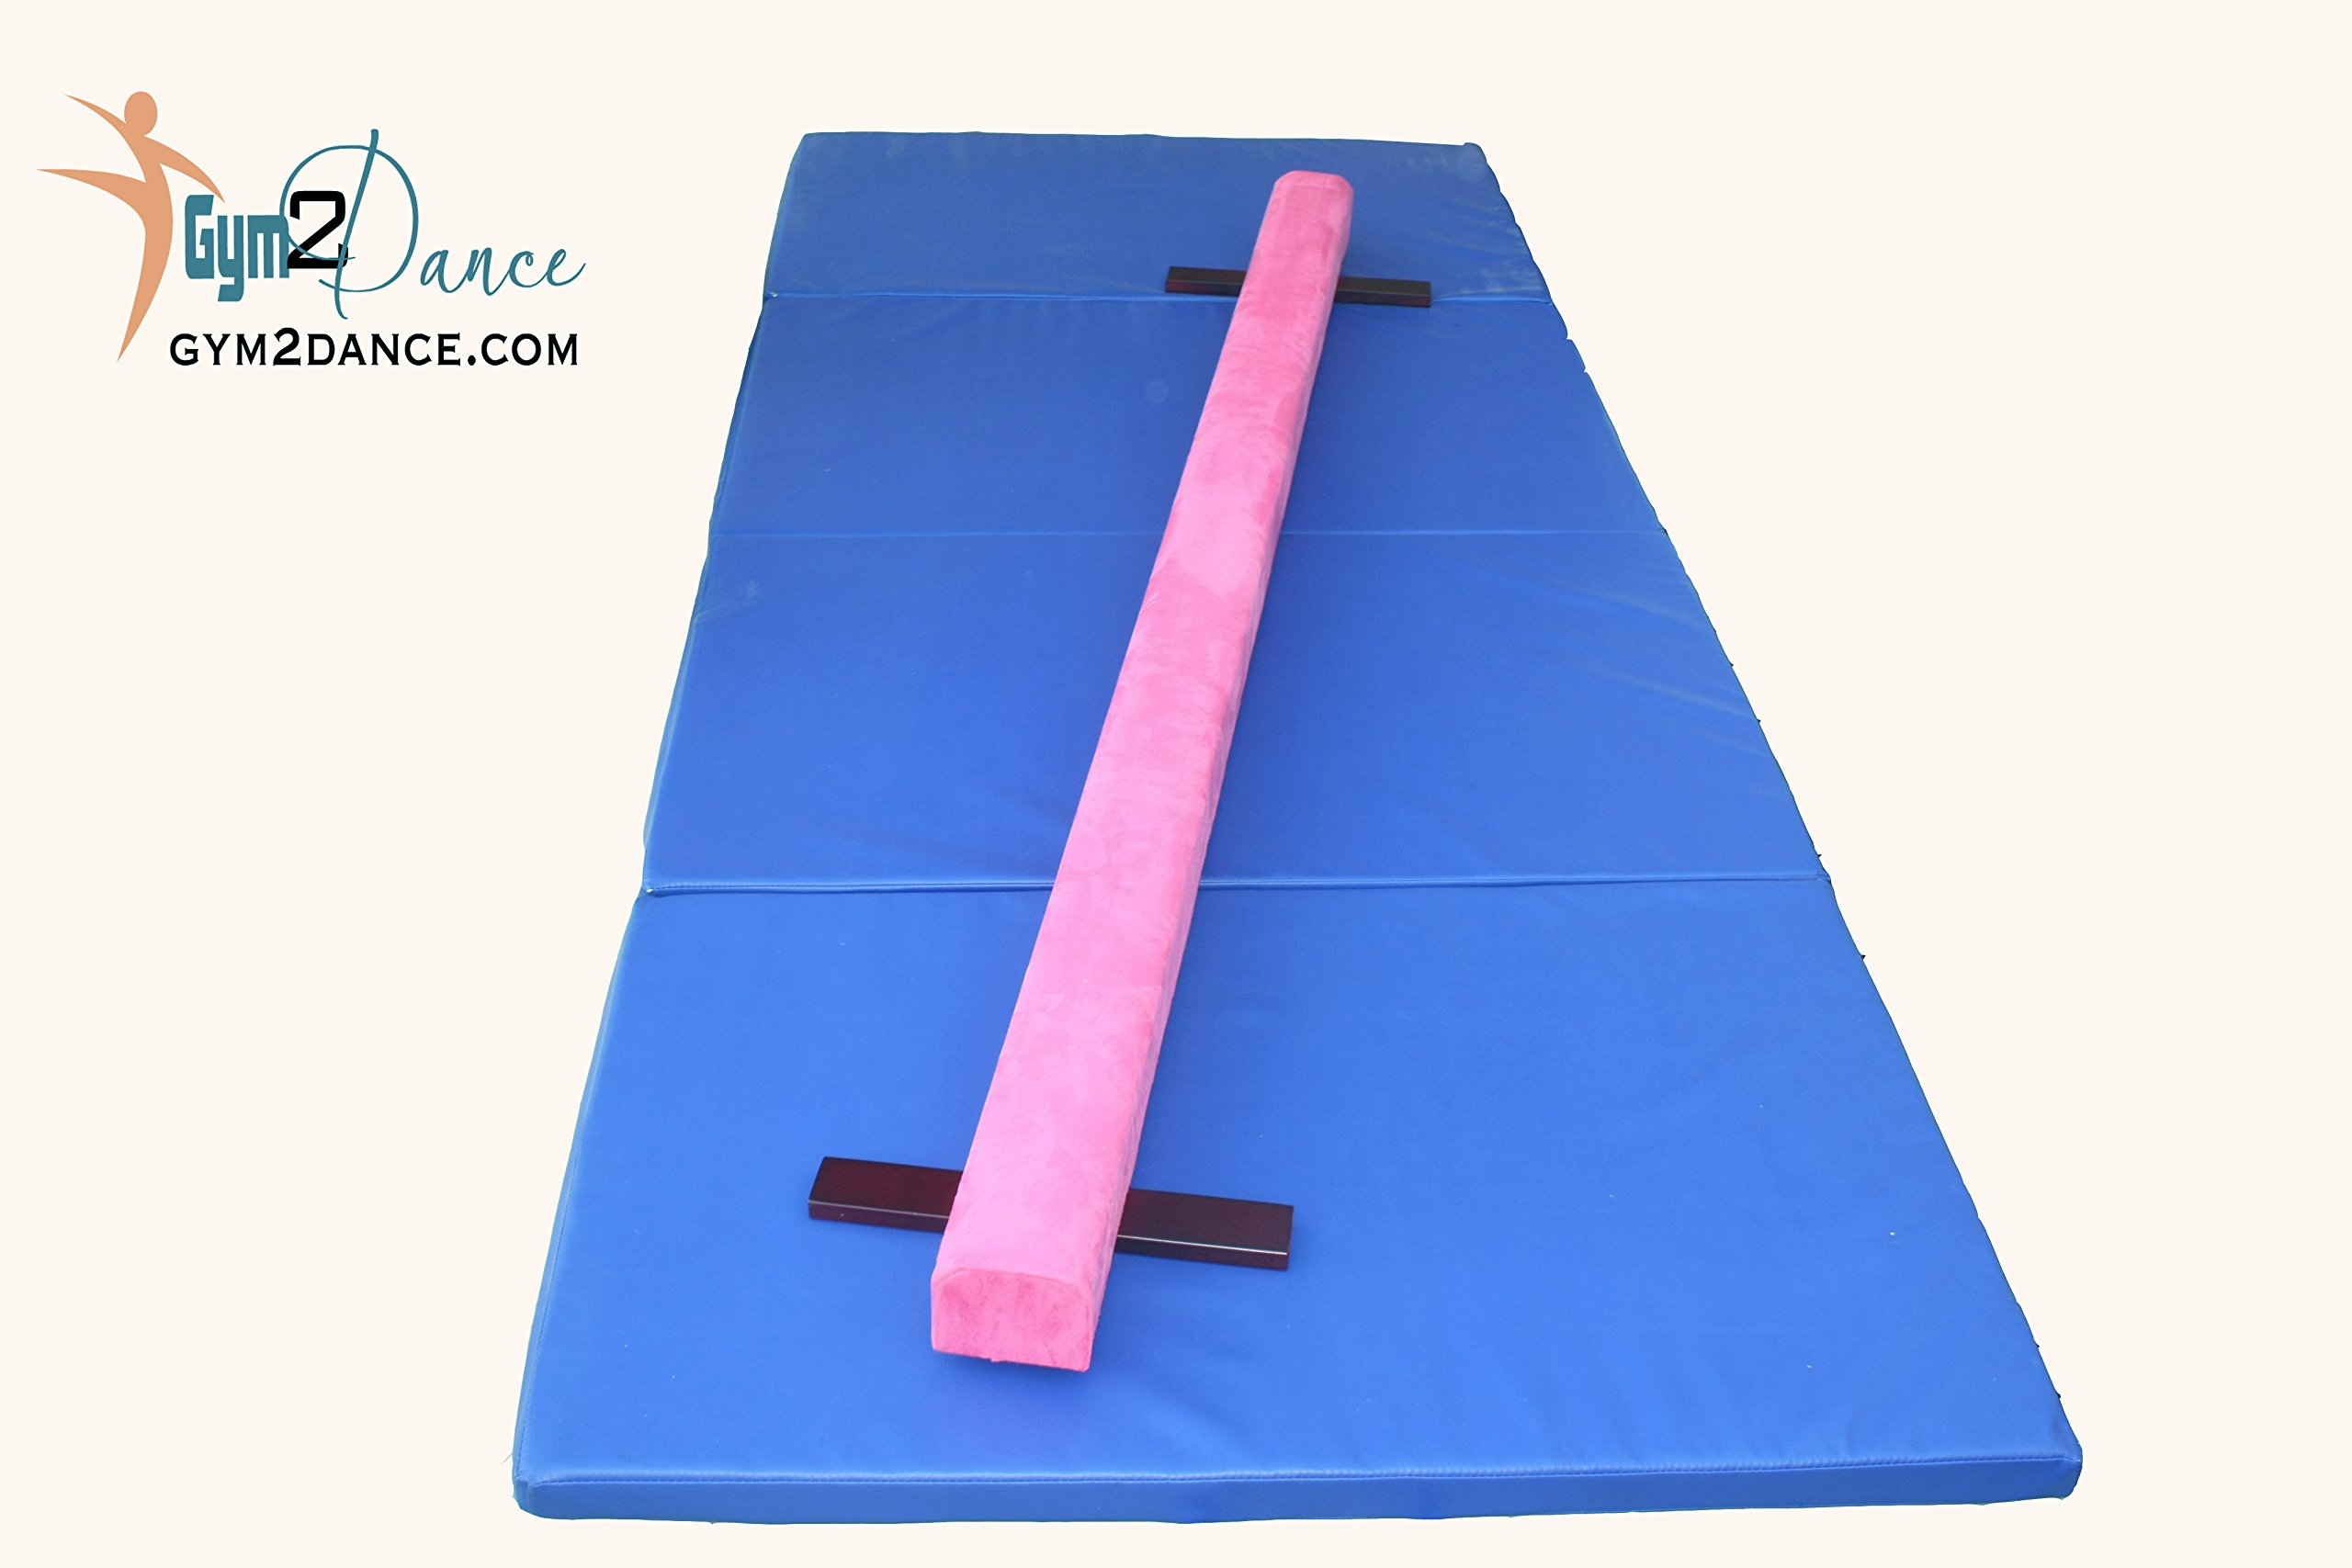 Gymnastics Beam and Mat Combo. 8' Long Beam Suede Surface with Padding, Sturdy Wood Structure and 10' x 4' Blue Mat by Gym2Dance